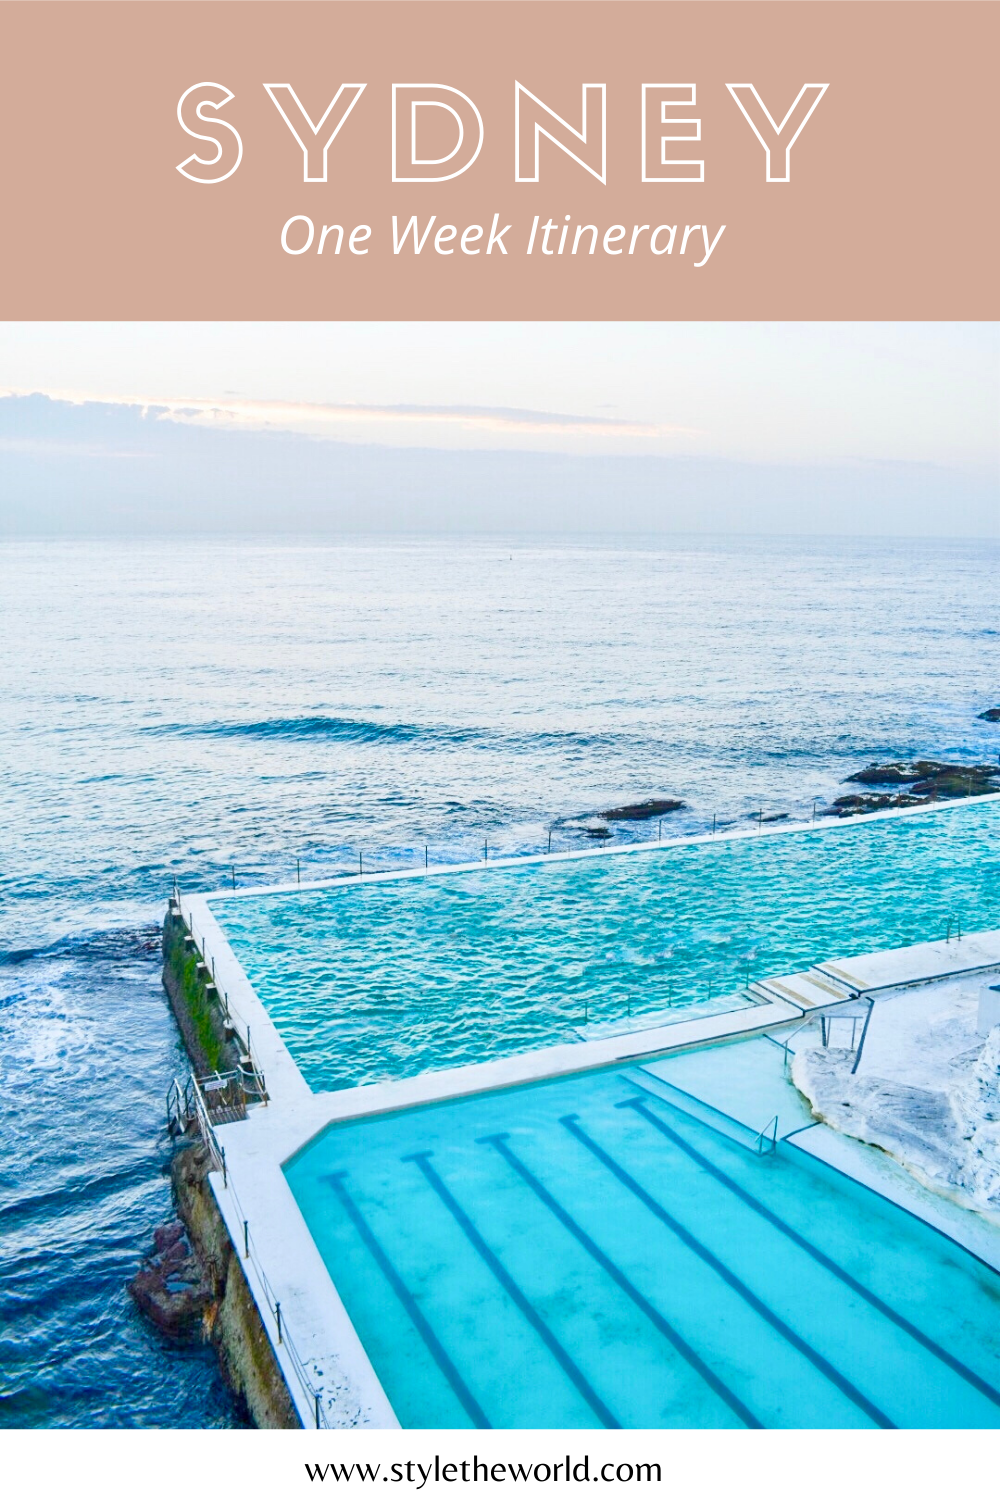 One Week Sydney Itinerary | Explore Sydney, the Blue Mountains, and Hunter Valley Wine Region in 7 Days in Australia | by Style the World | #visitaustralia #travelinspiration #sydneyitinerary